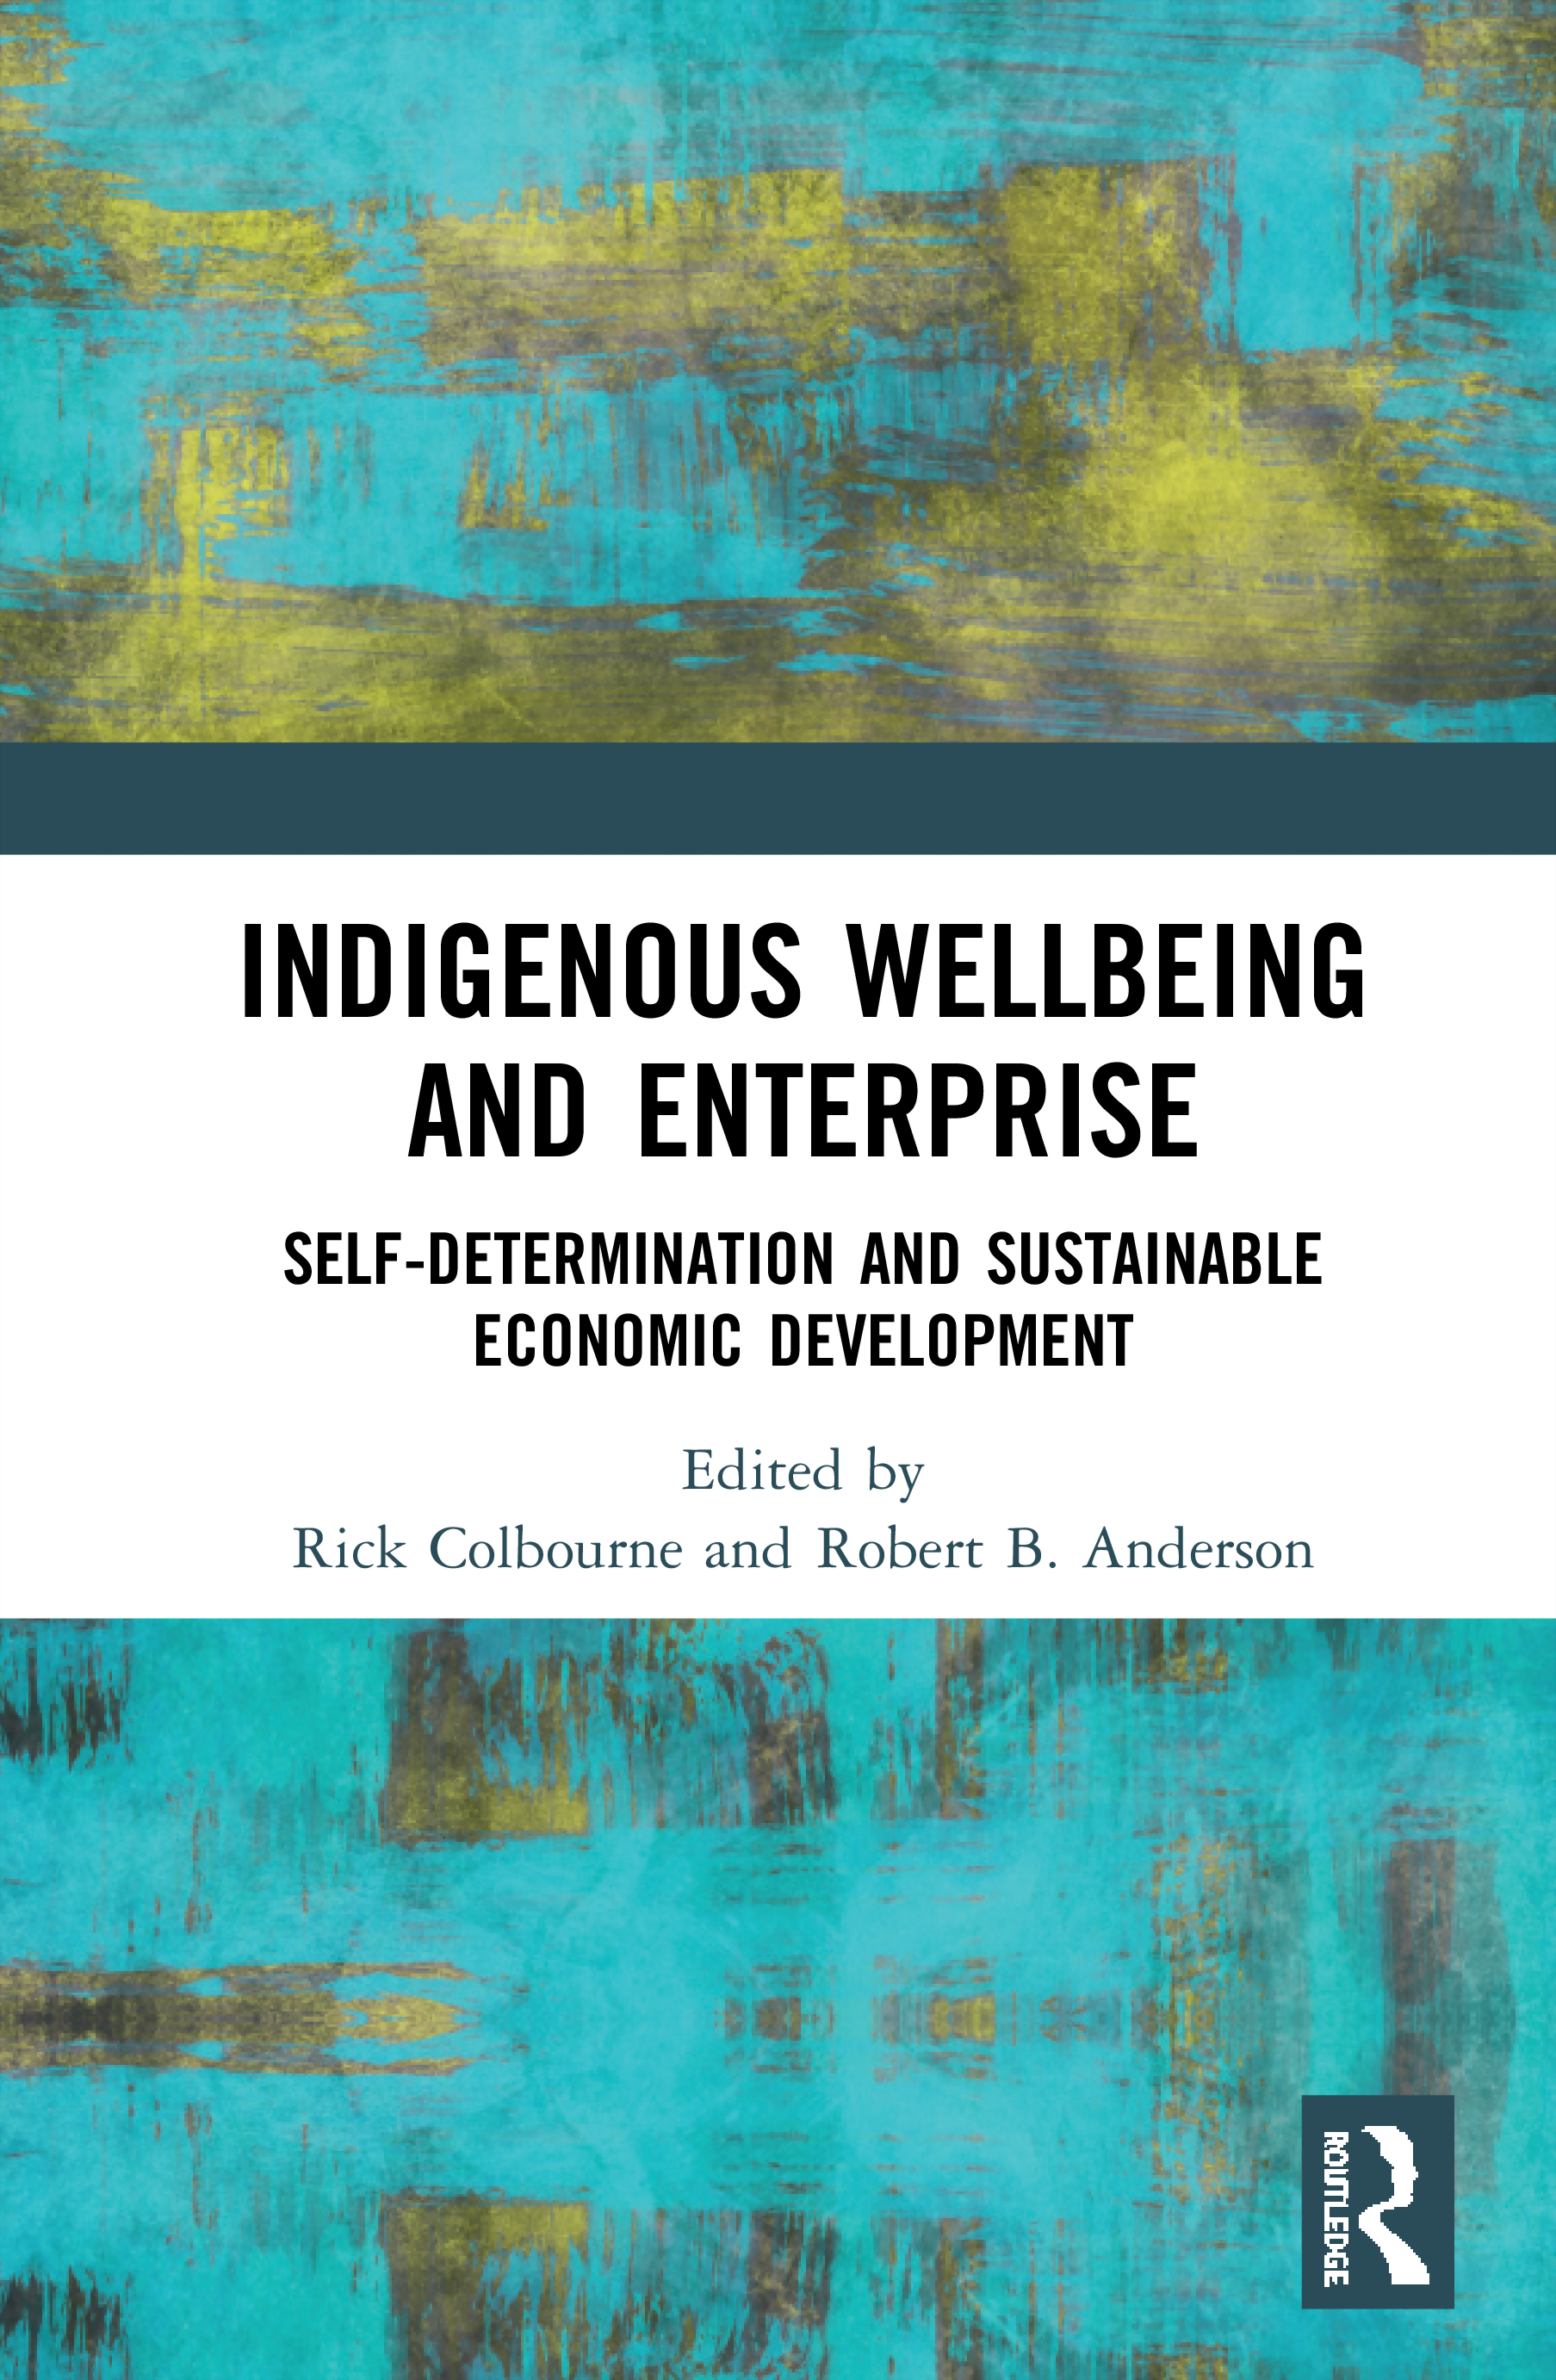 Indigenous Wellbeing and Enterprise: Self-Determination and Sustainable Economic Development book cover